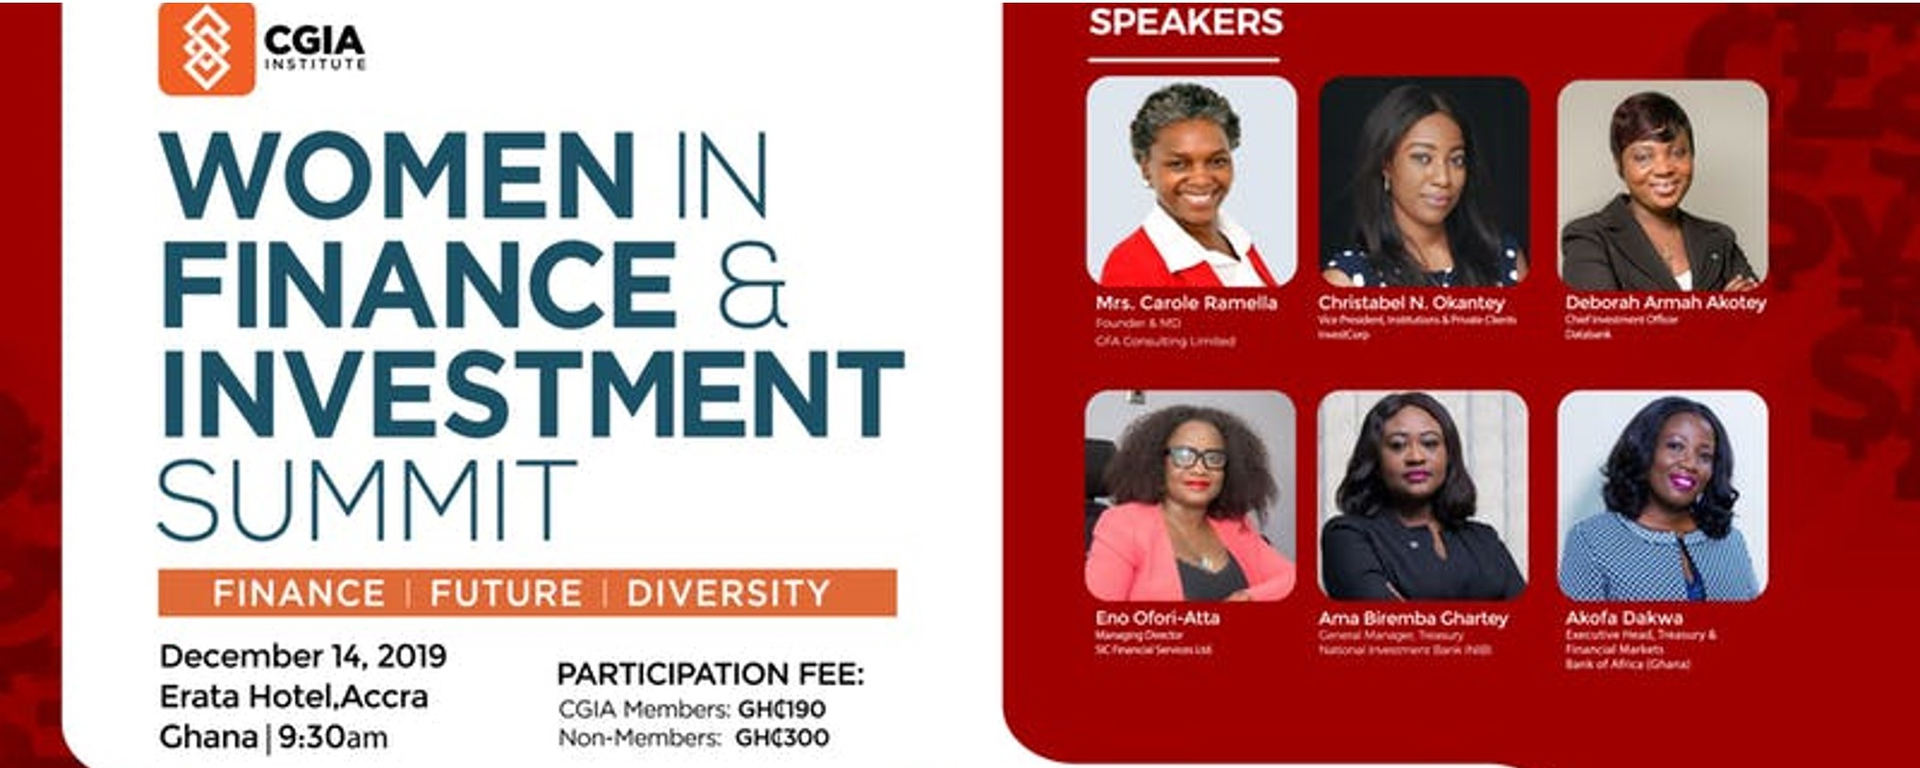 CGIA Network Ghana - Women in Finance & Investment Summit Movemeback African event cover image